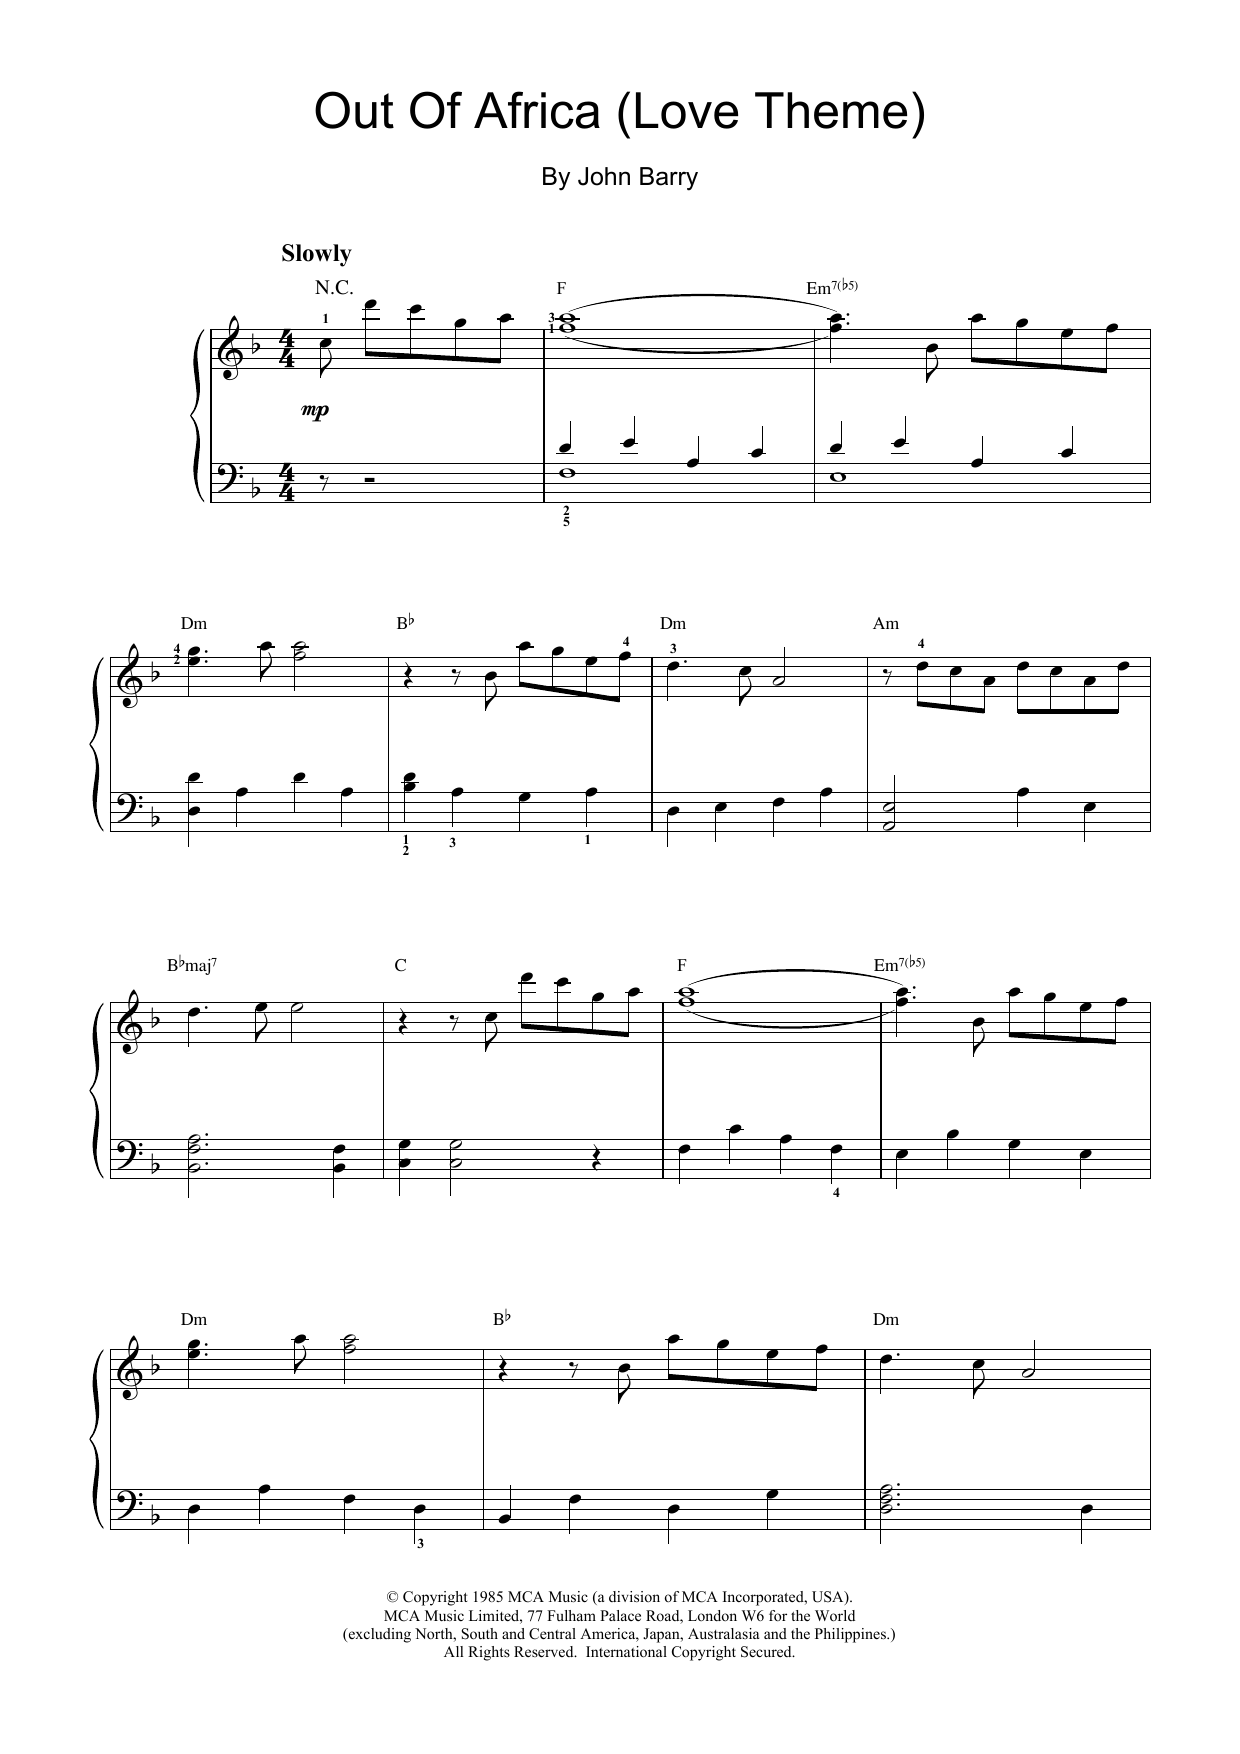 Out Of Africa (Love Theme) sheet music for piano solo by John Barry